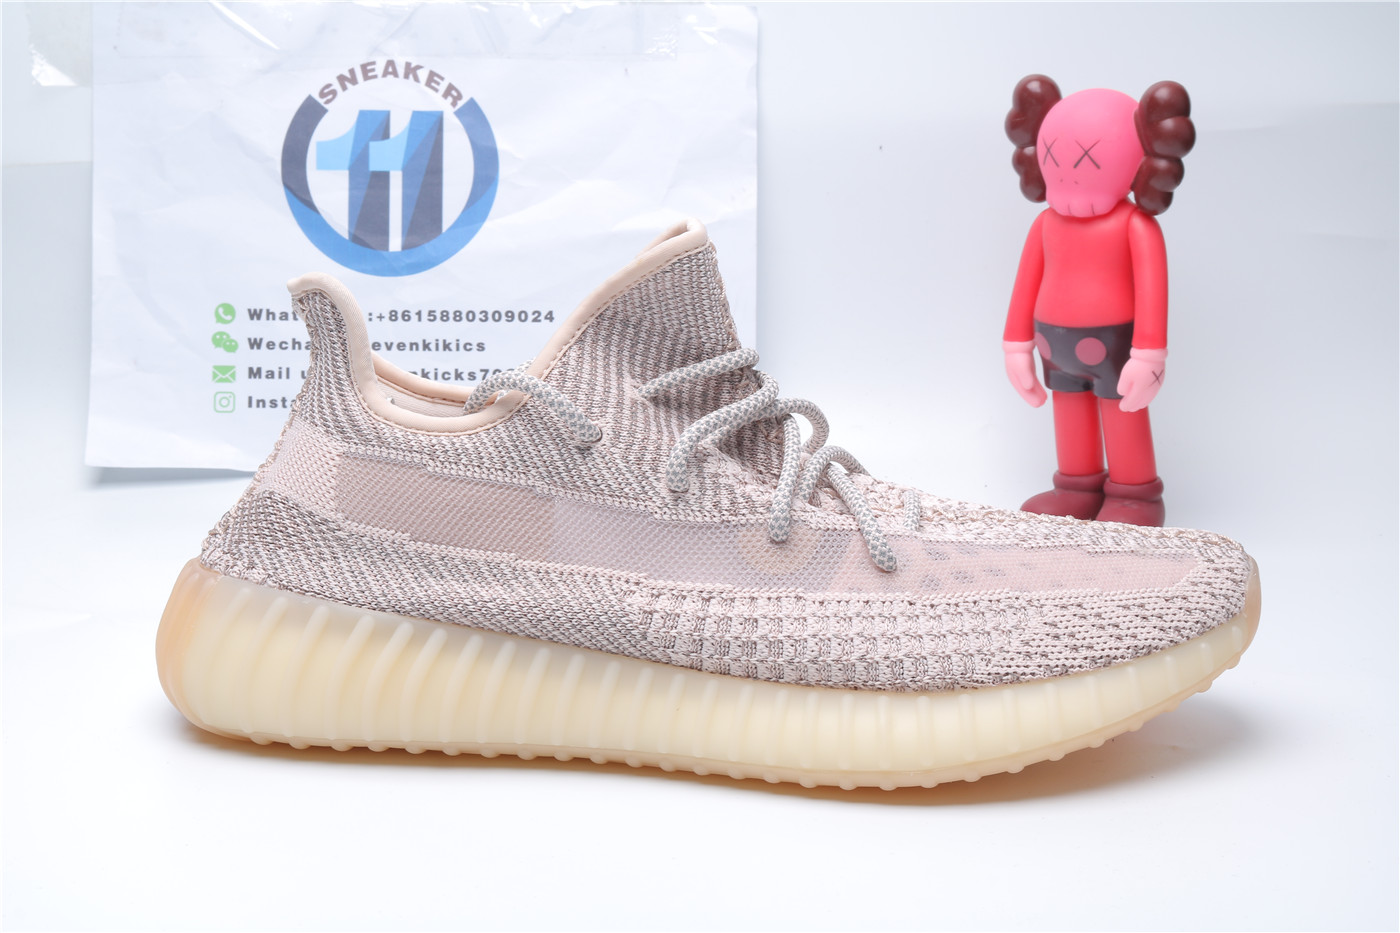 Adidas Yeezy Boost 350 V2 Static SYNTH Reflective 5666